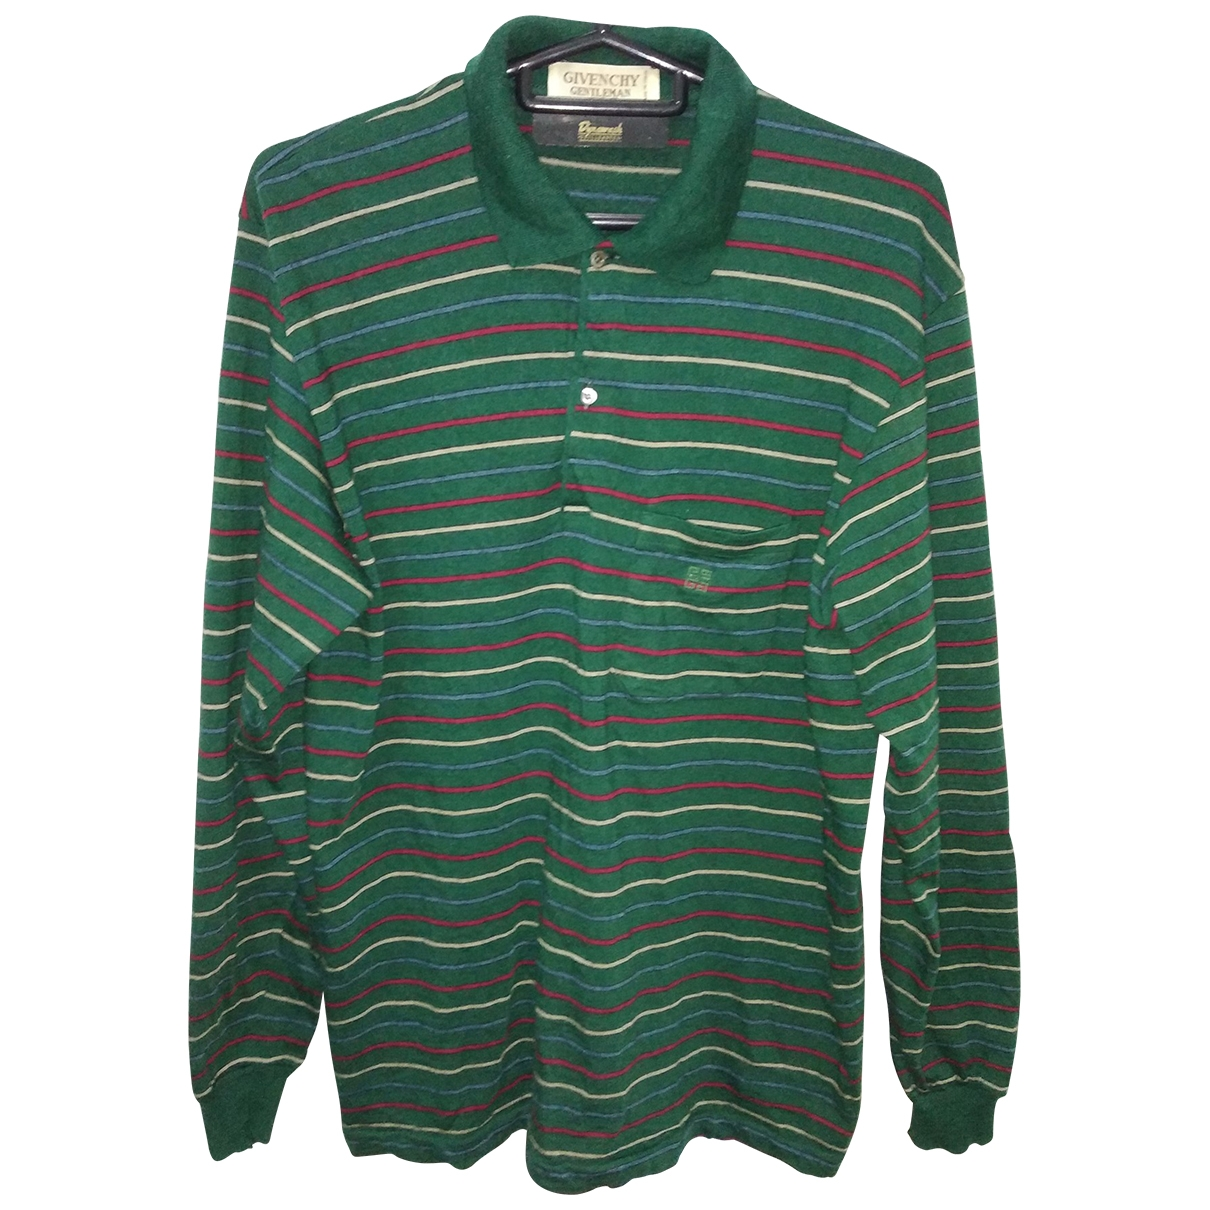 Givenchy \N Multicolour Polo shirts for Men L International